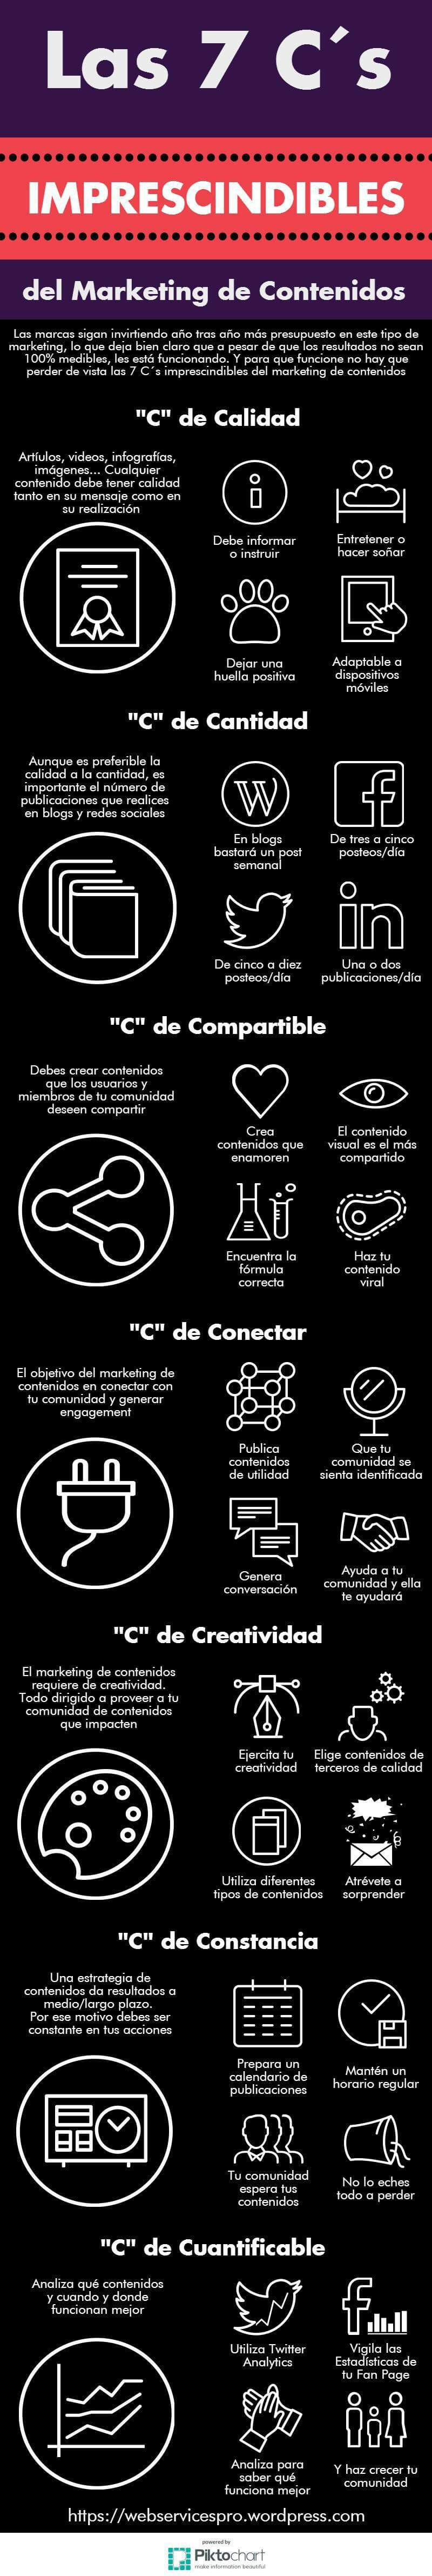 7 Cs del Marketing de Contenidos